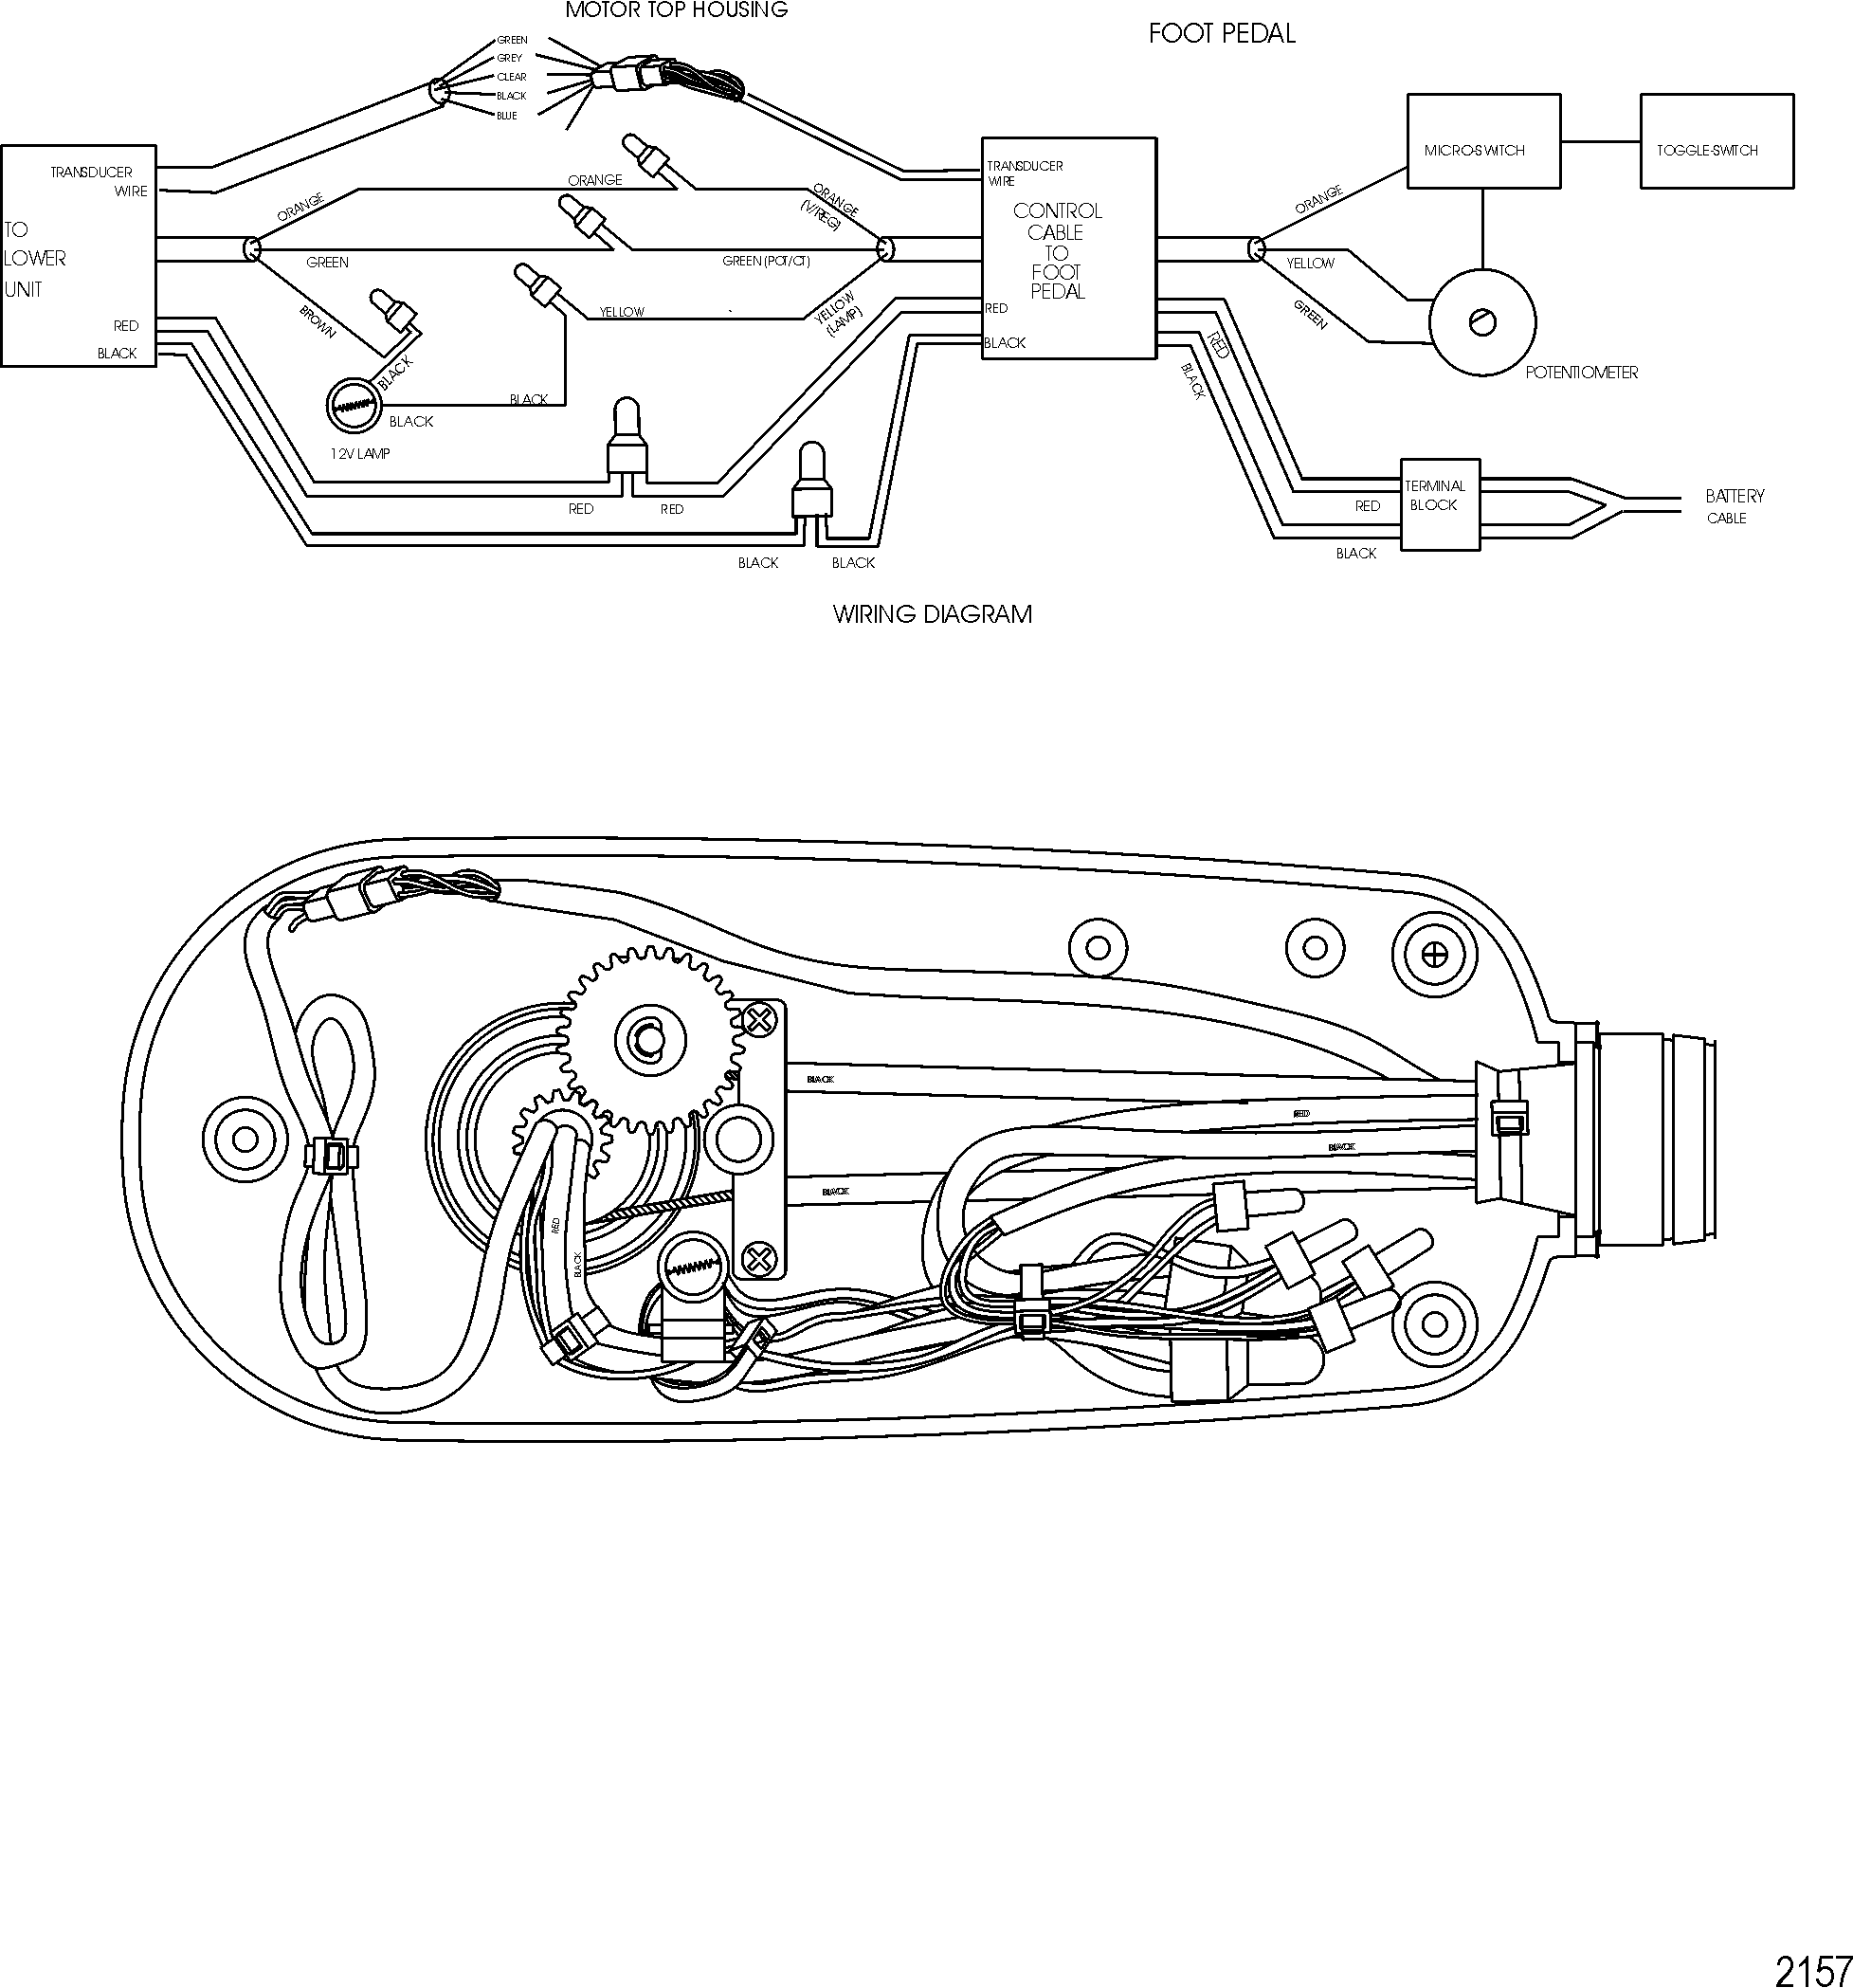 Motorguide Foot Pedal Wiring Diagram Explained Diagrams Accelerator Volvo Funky Pattern Electrical